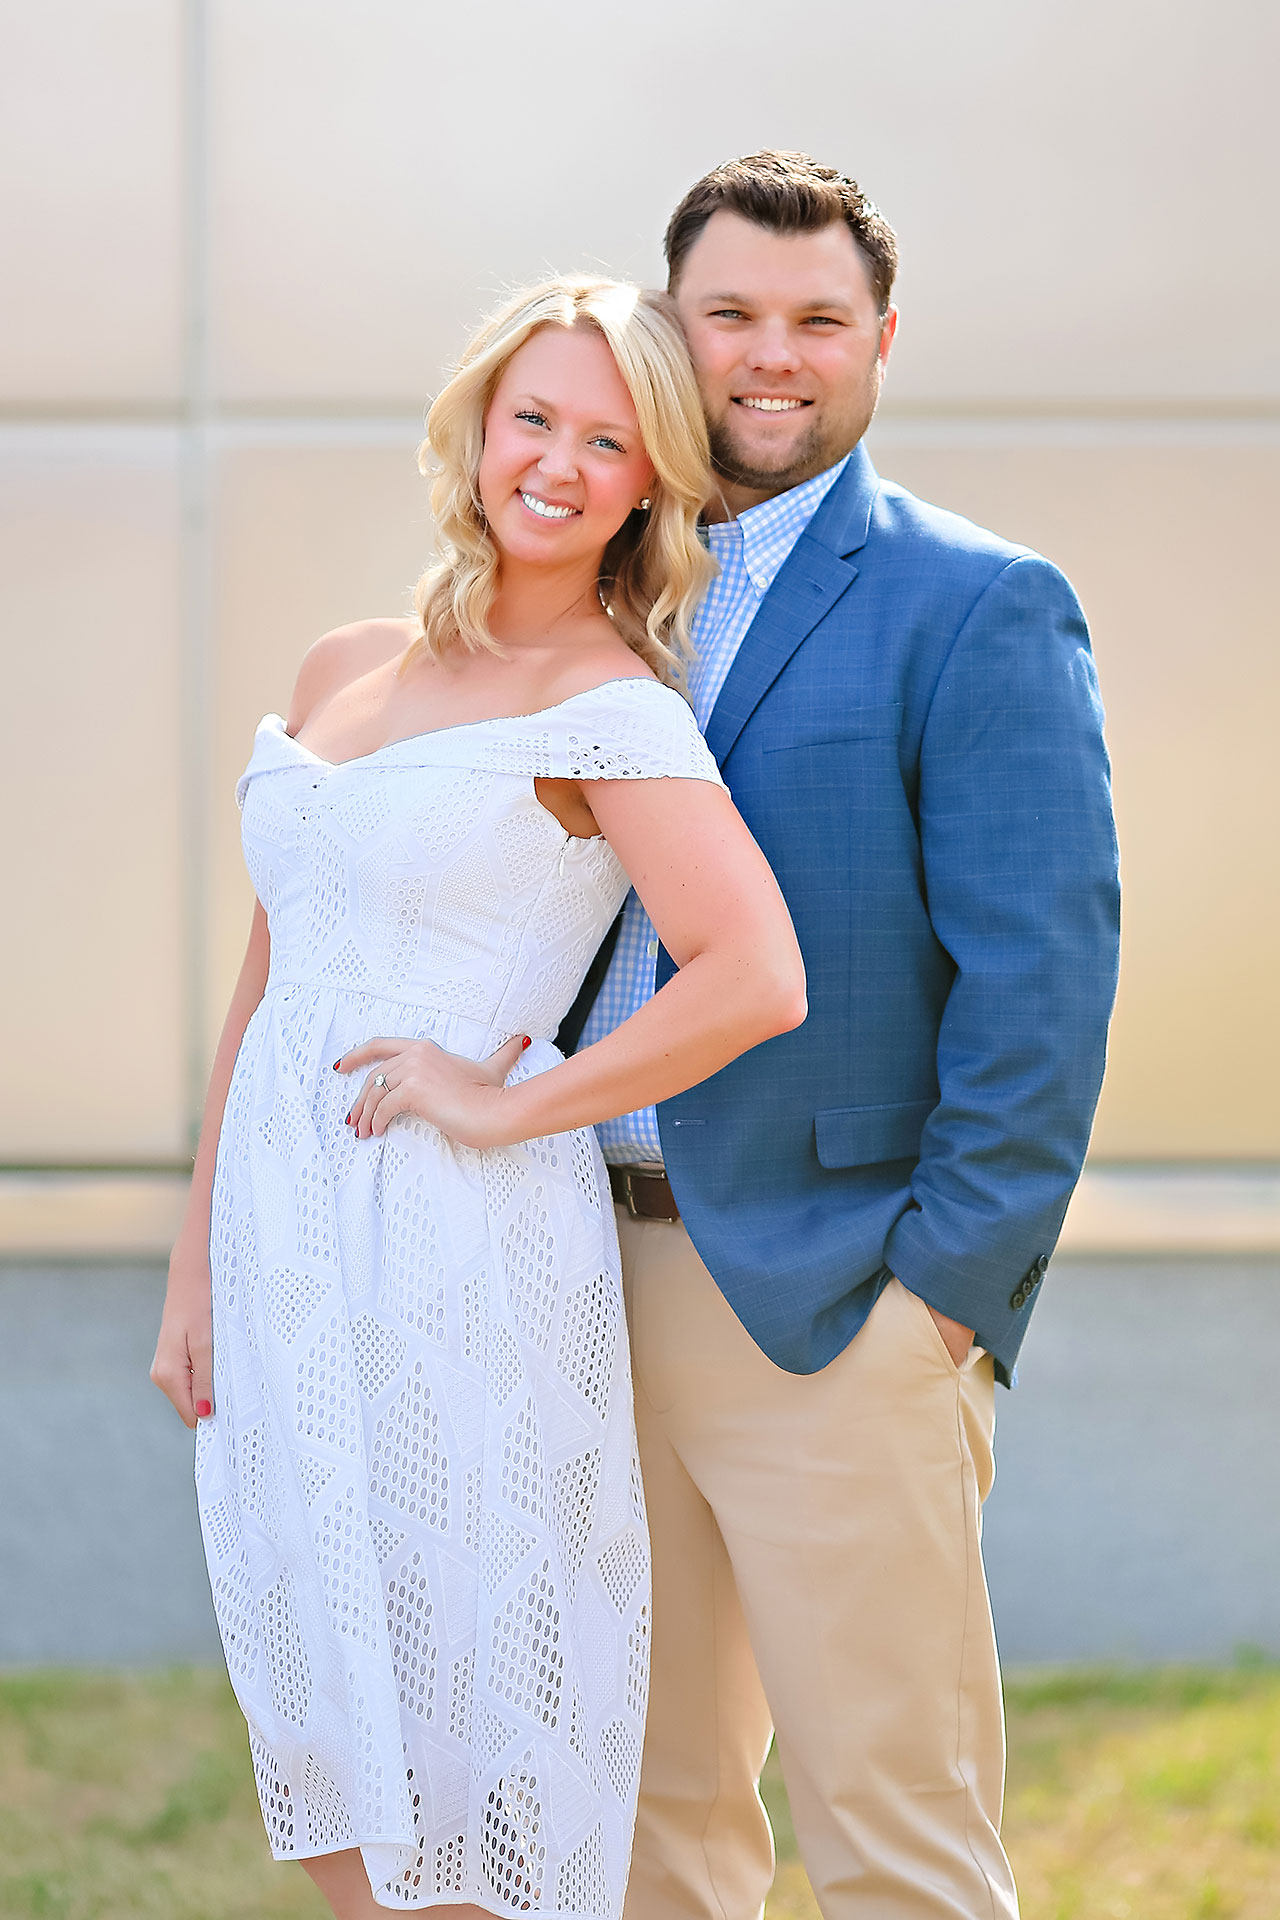 Chelsea Tom Downtown Indianapolis Engagement Session 039